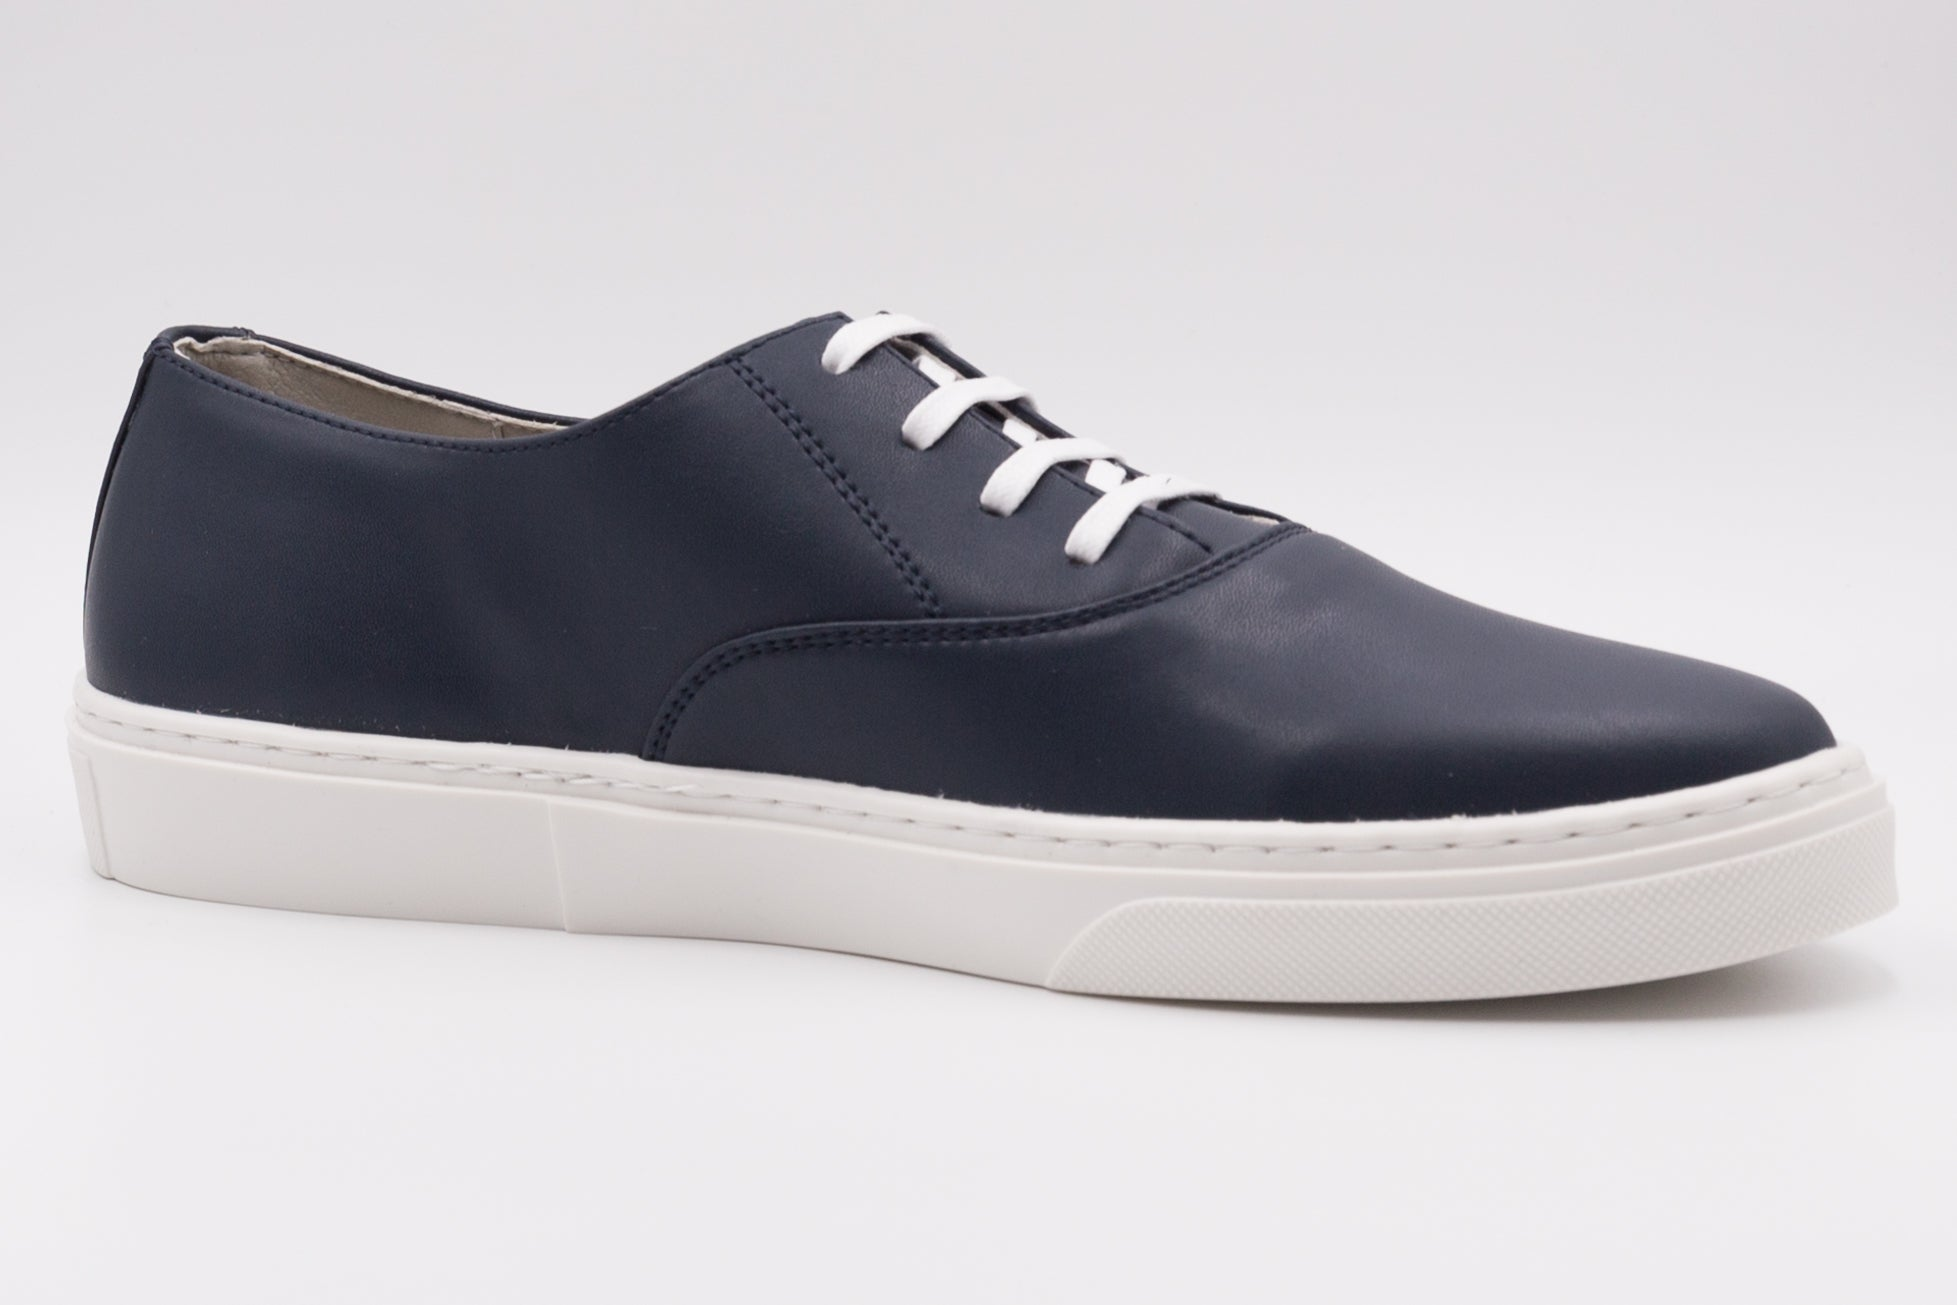 Vegan shoes from Paris, dark blue cruelty-free sneakers